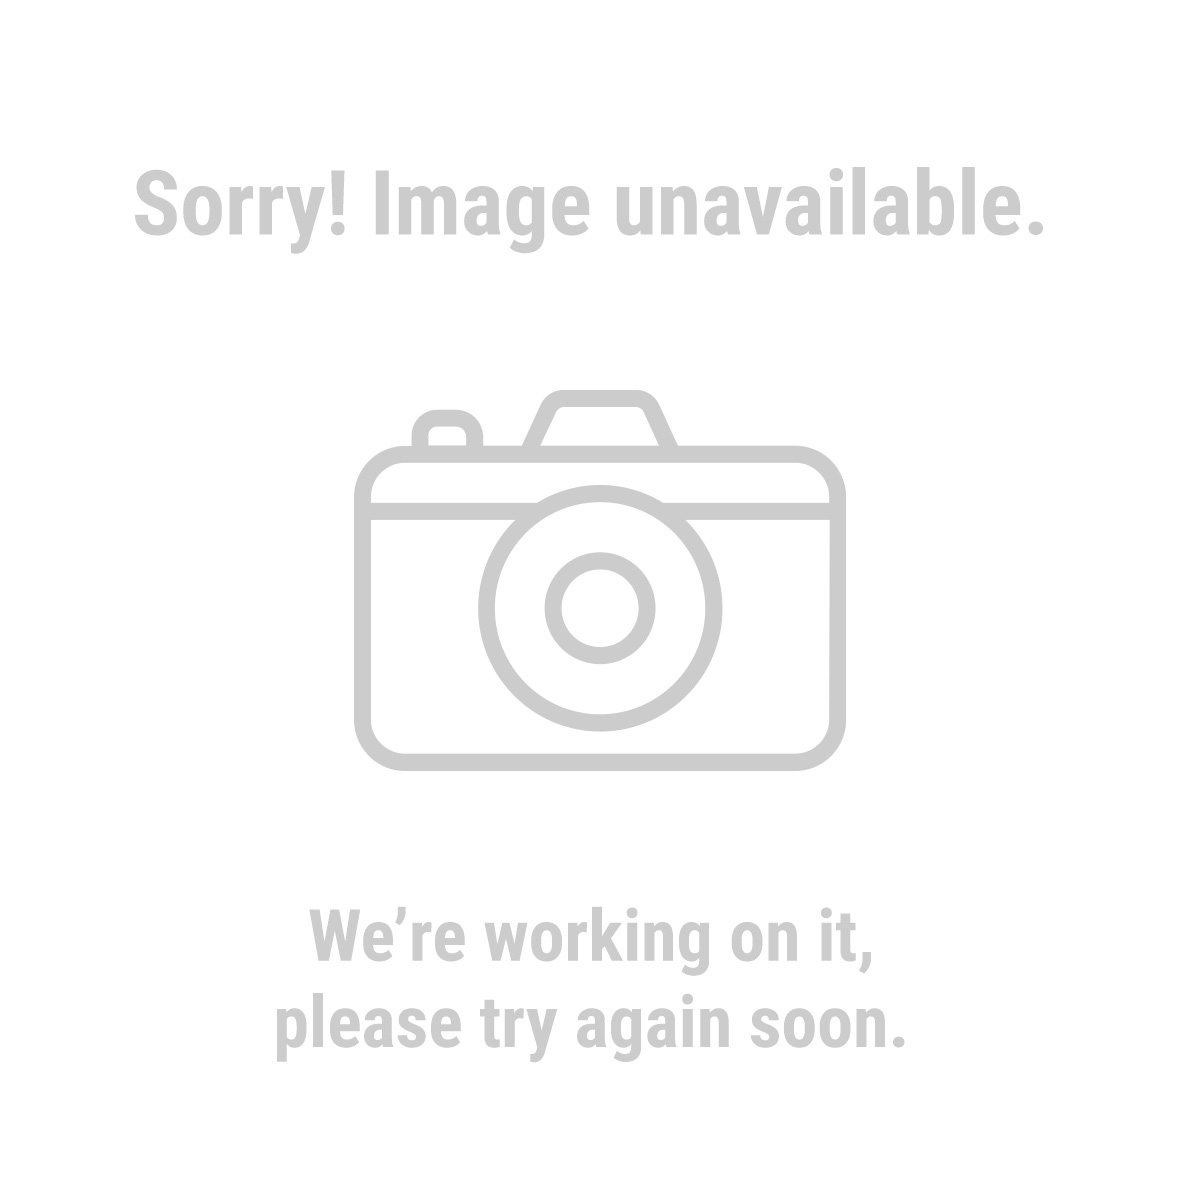 Central-Machinery 62266 Wet/Dry Shop Vacuum & Blower - 5 Gallon